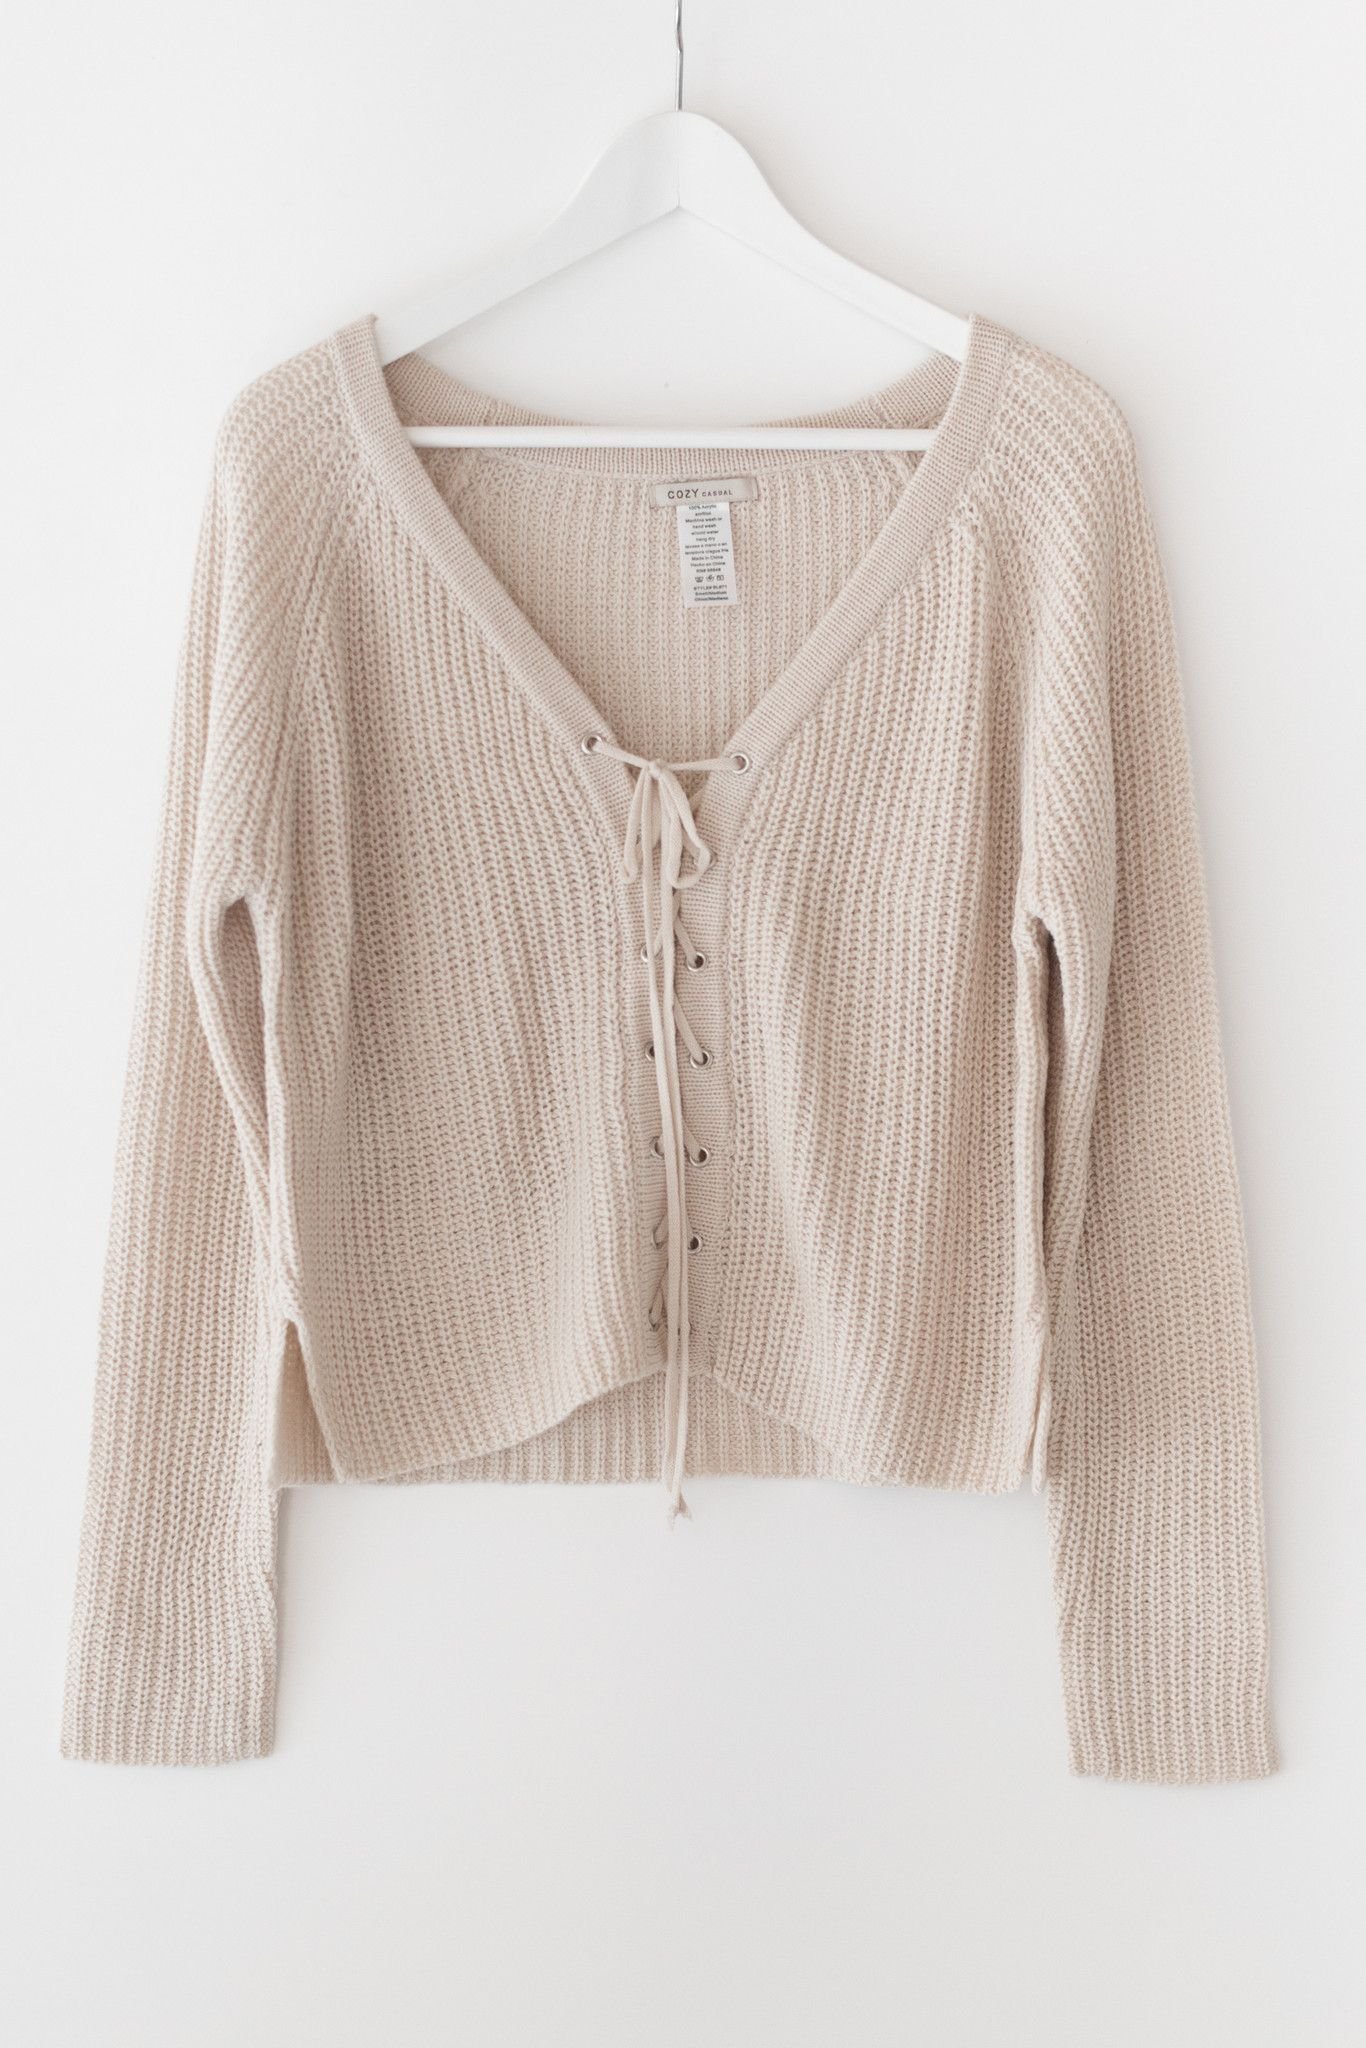 Nude oversized front lace-up sweater - Chunky sweater knit material -  Slightly cropped fit - Size S M has a total length of approx. fbdd0472f